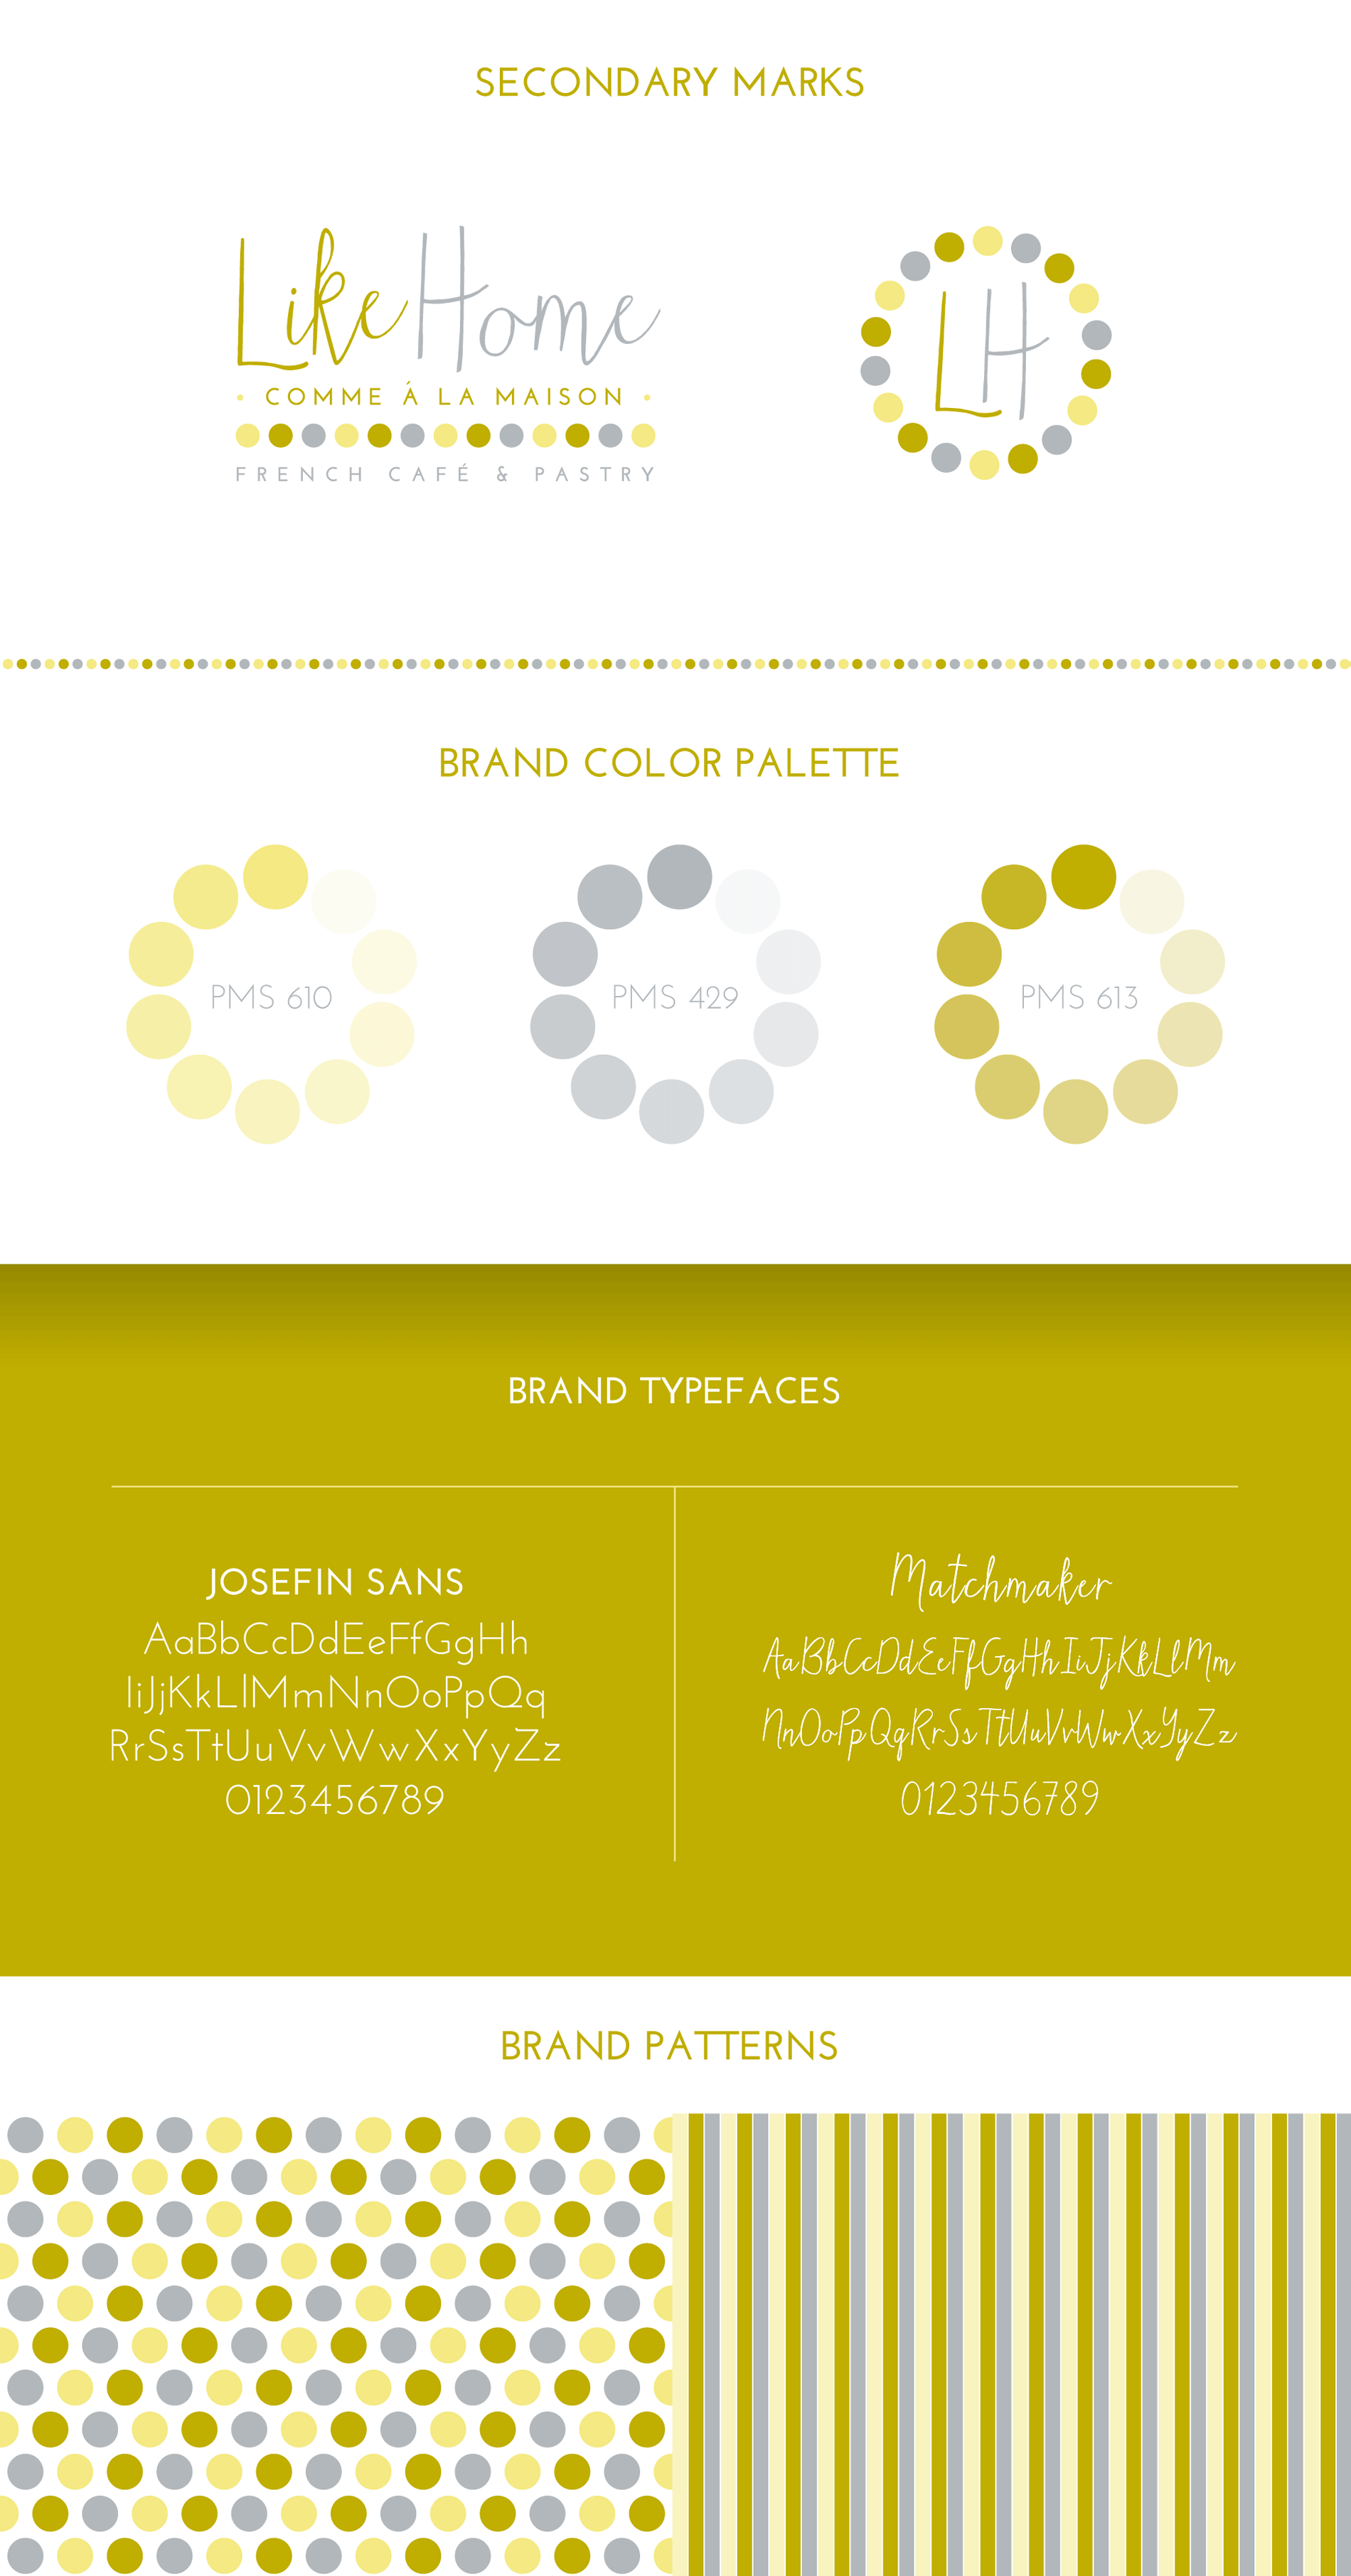 Secondary logo marks, brand colors, typefaces & patterns